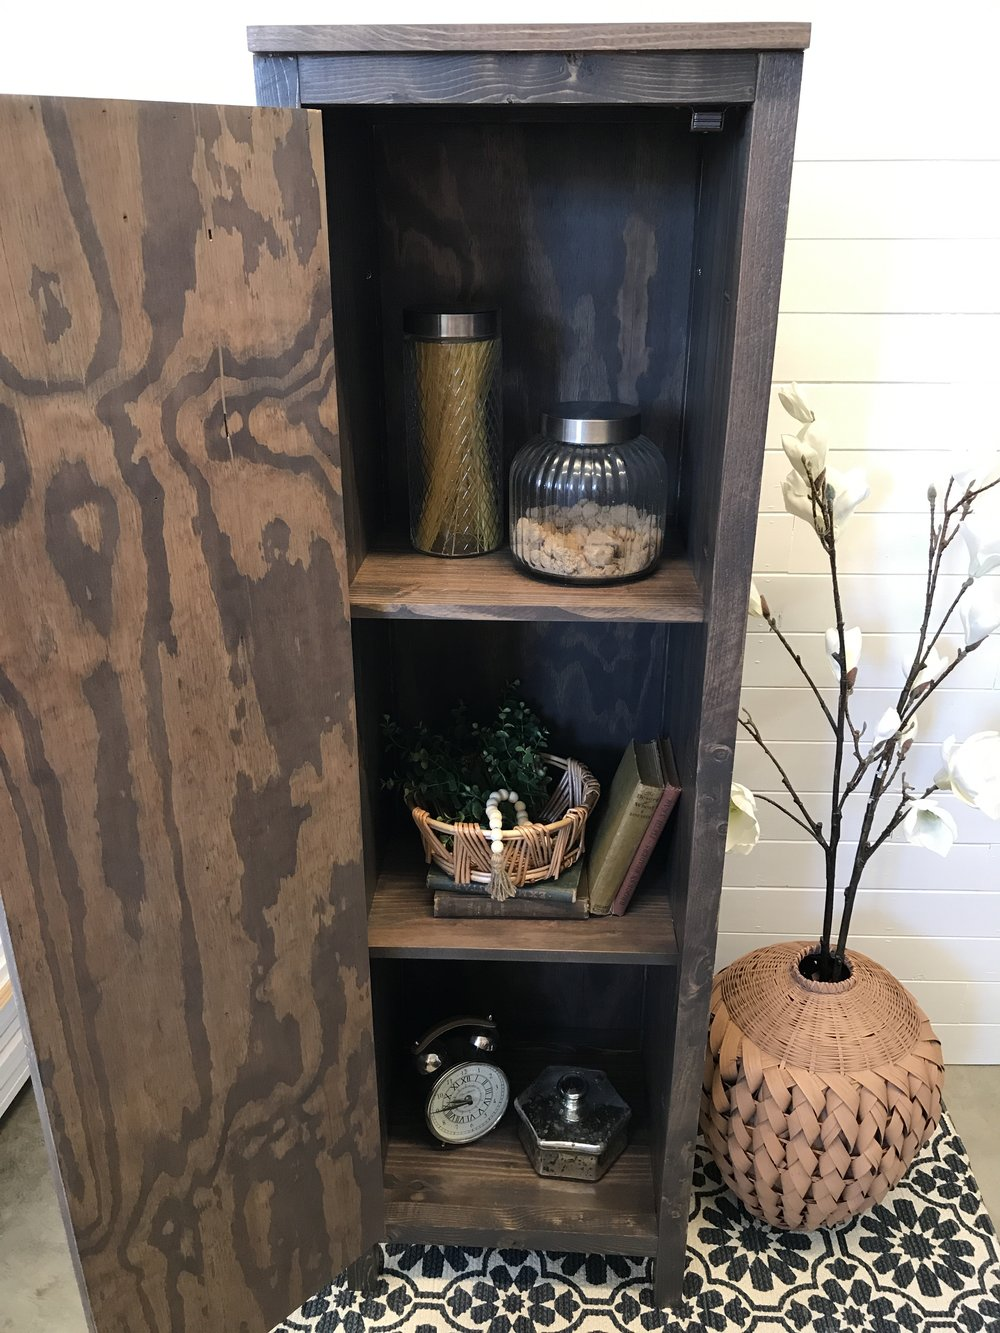 5' Tall Cabinet